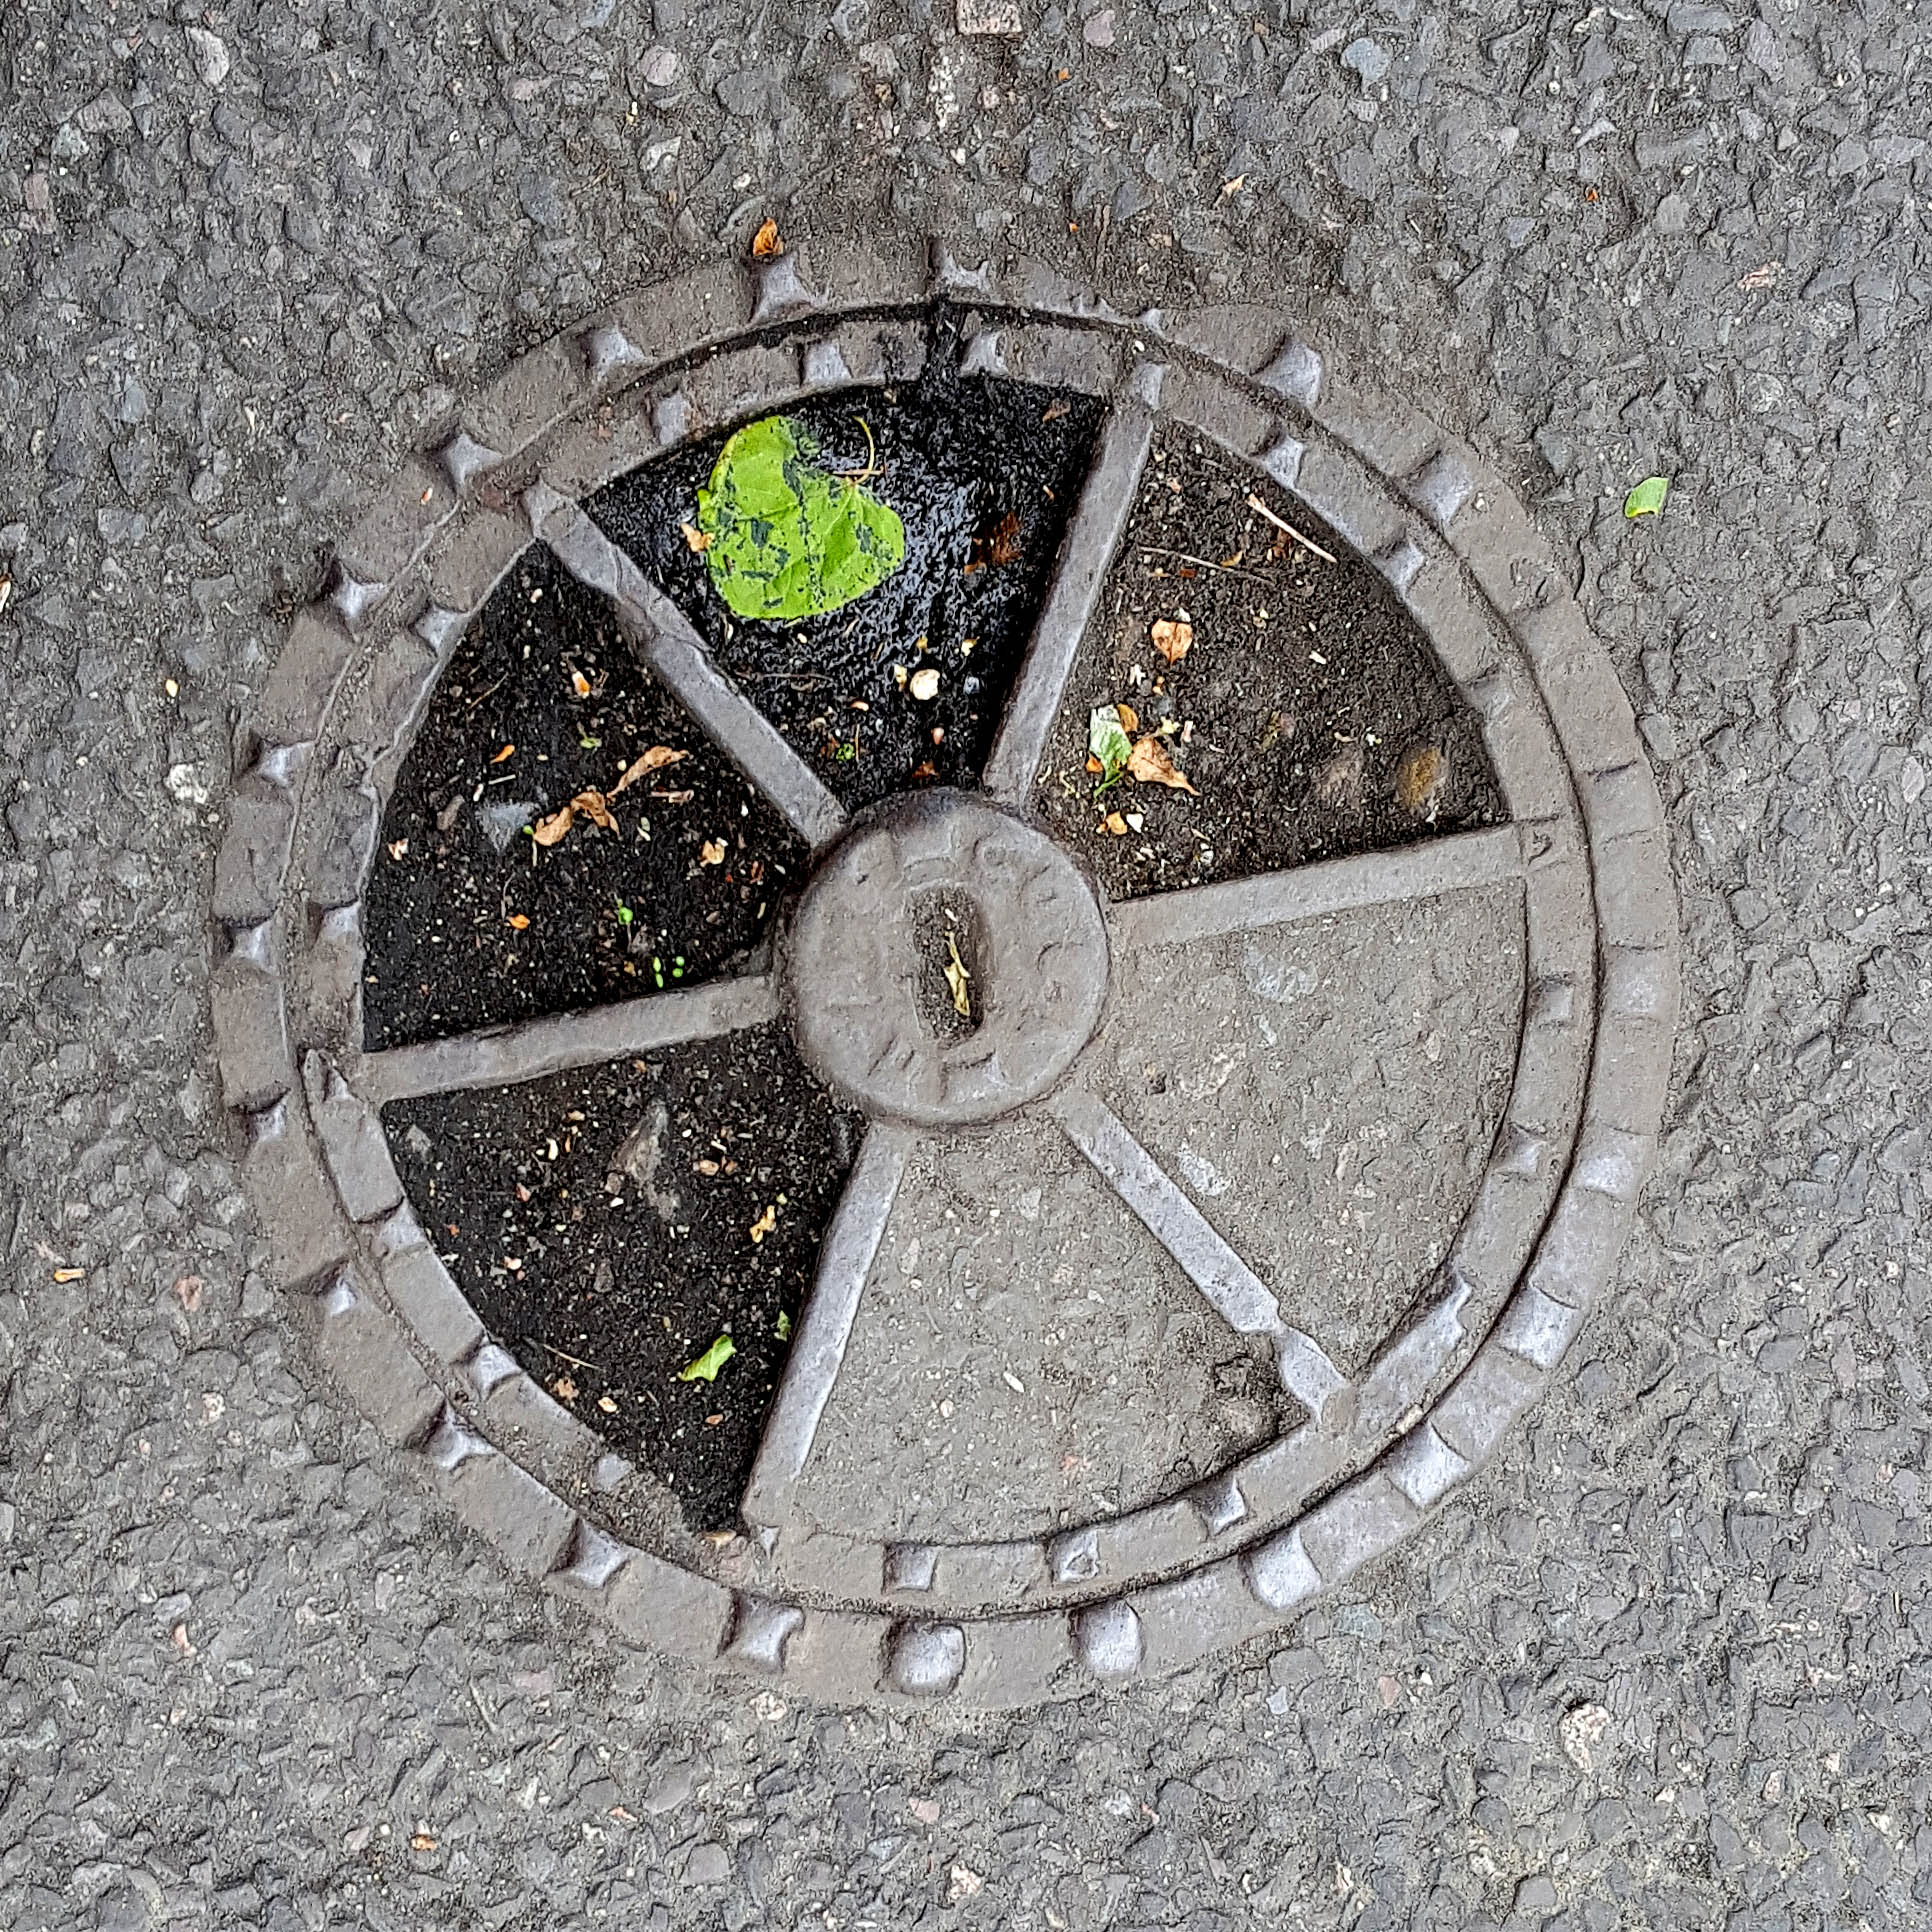 Manhole Cover, London - Cast iron surround with six segments of concrete and dirt